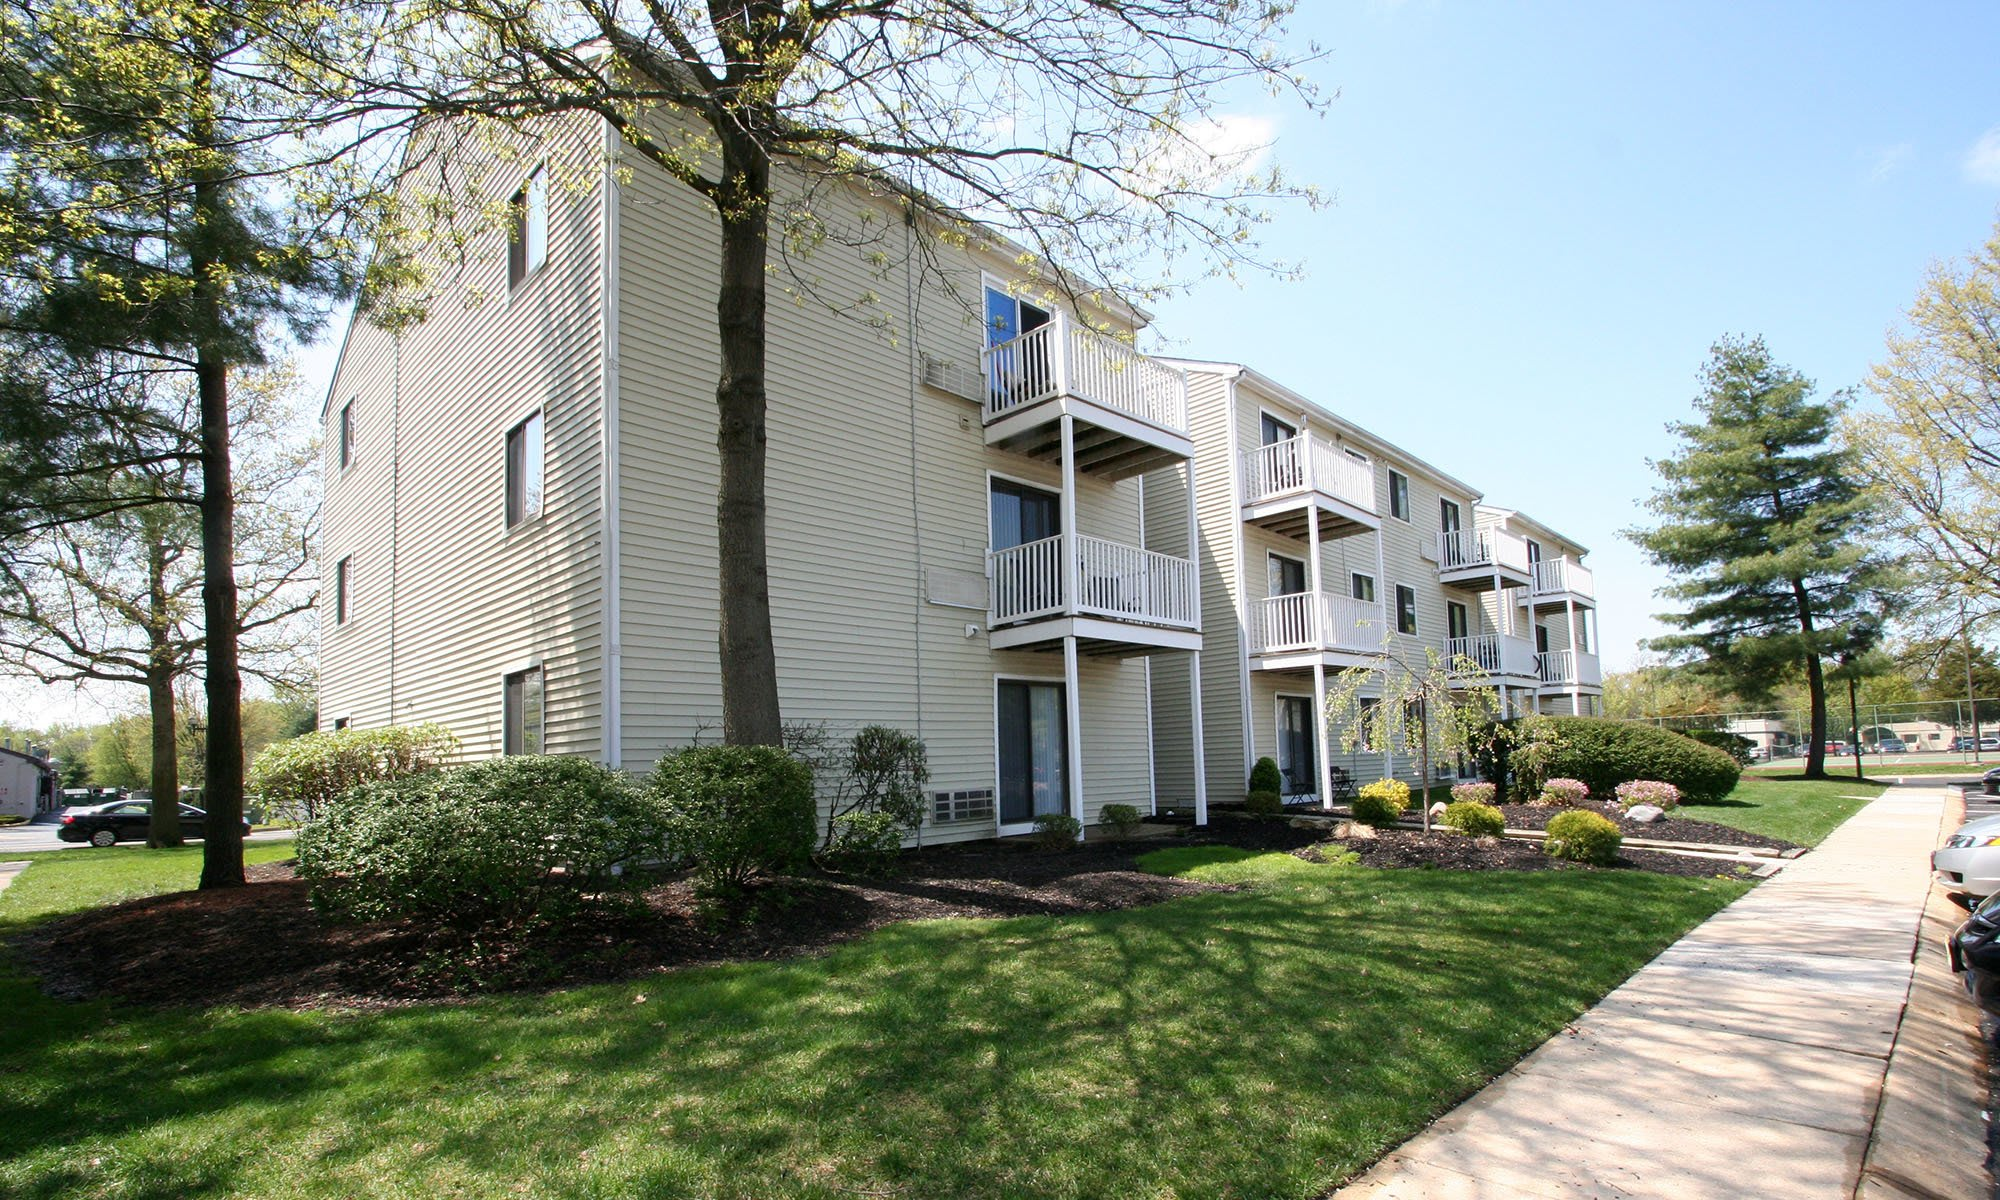 Echelon Voorhees Nj Apartments For Rent The Village At